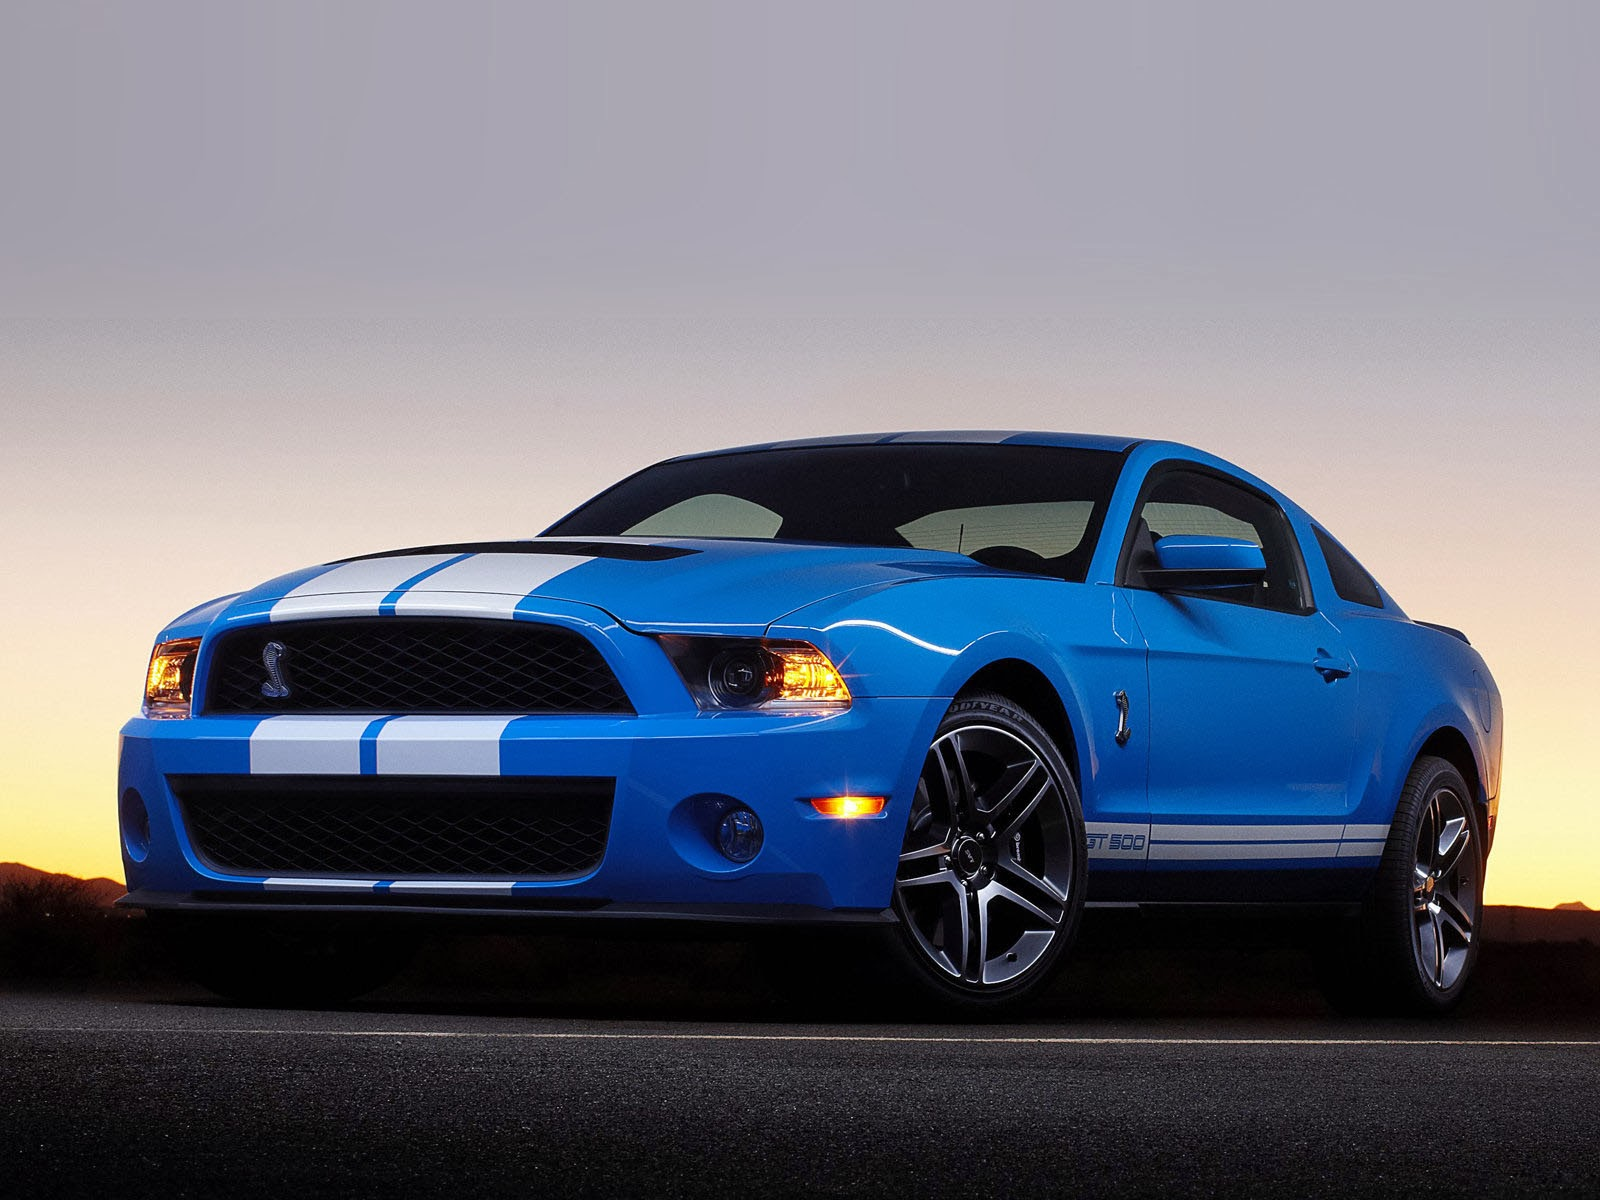 Wallpapers Ford Mustang Shelby Gt500 Car Wallpapers